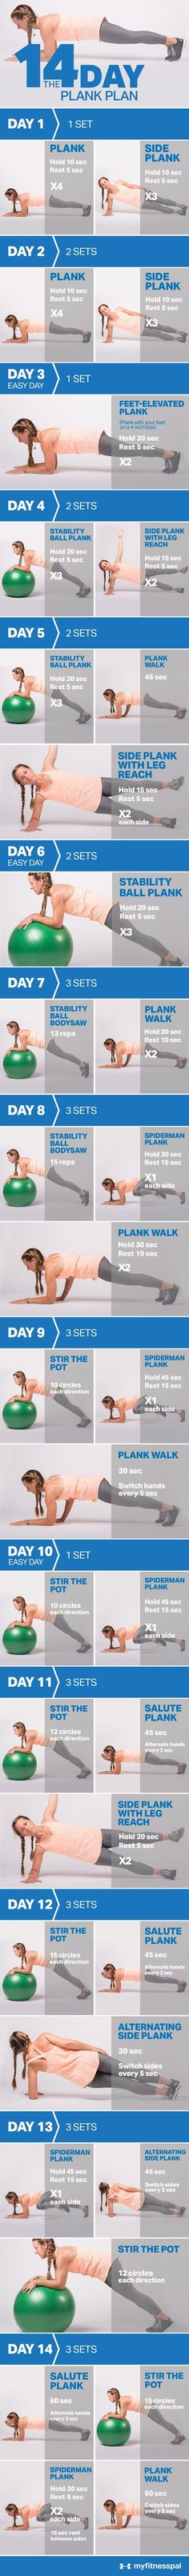 14 Day Plank Challenge You already know the plank is a great core exercise. So we're adding plank variations to amp up your training, target your midsection from different ...14 Day Plank Challenge You already know the plank is a great core exercise. So we're adding plank variations to amp up your training, target your midsection from different ...